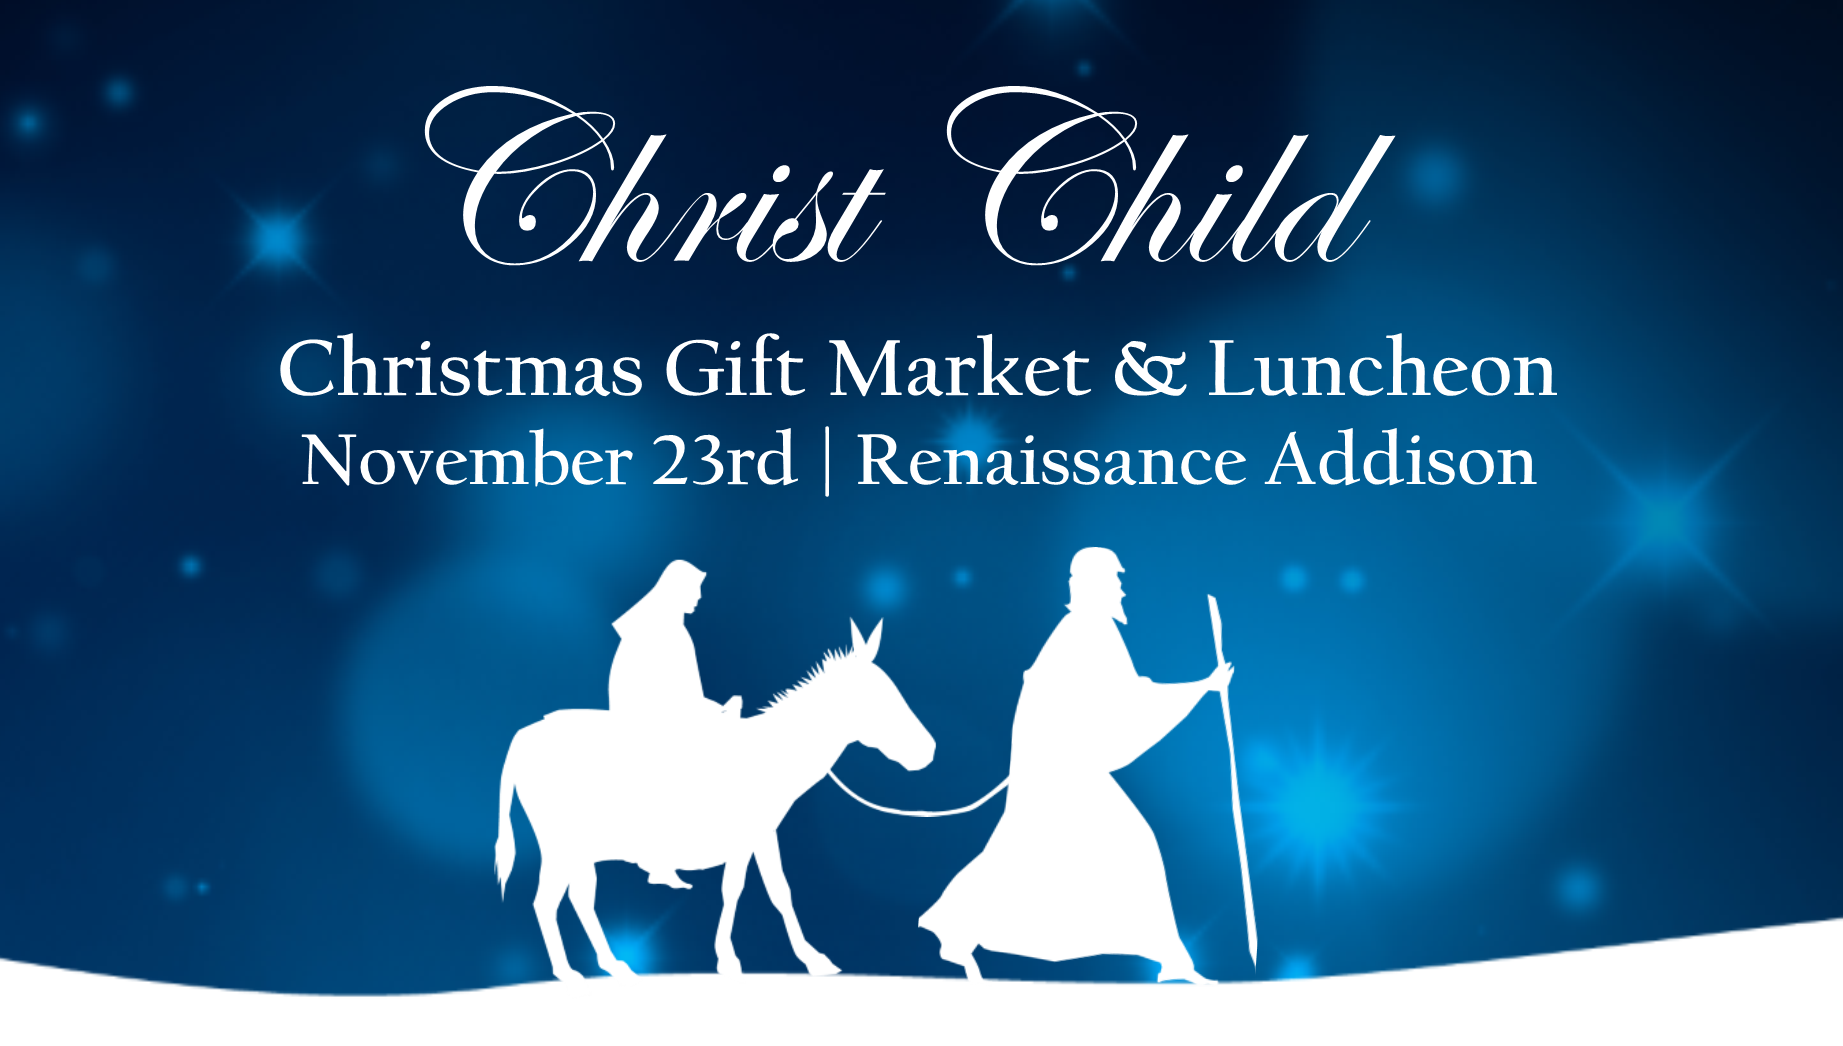 Christ Child Christmas Market and Luncheon